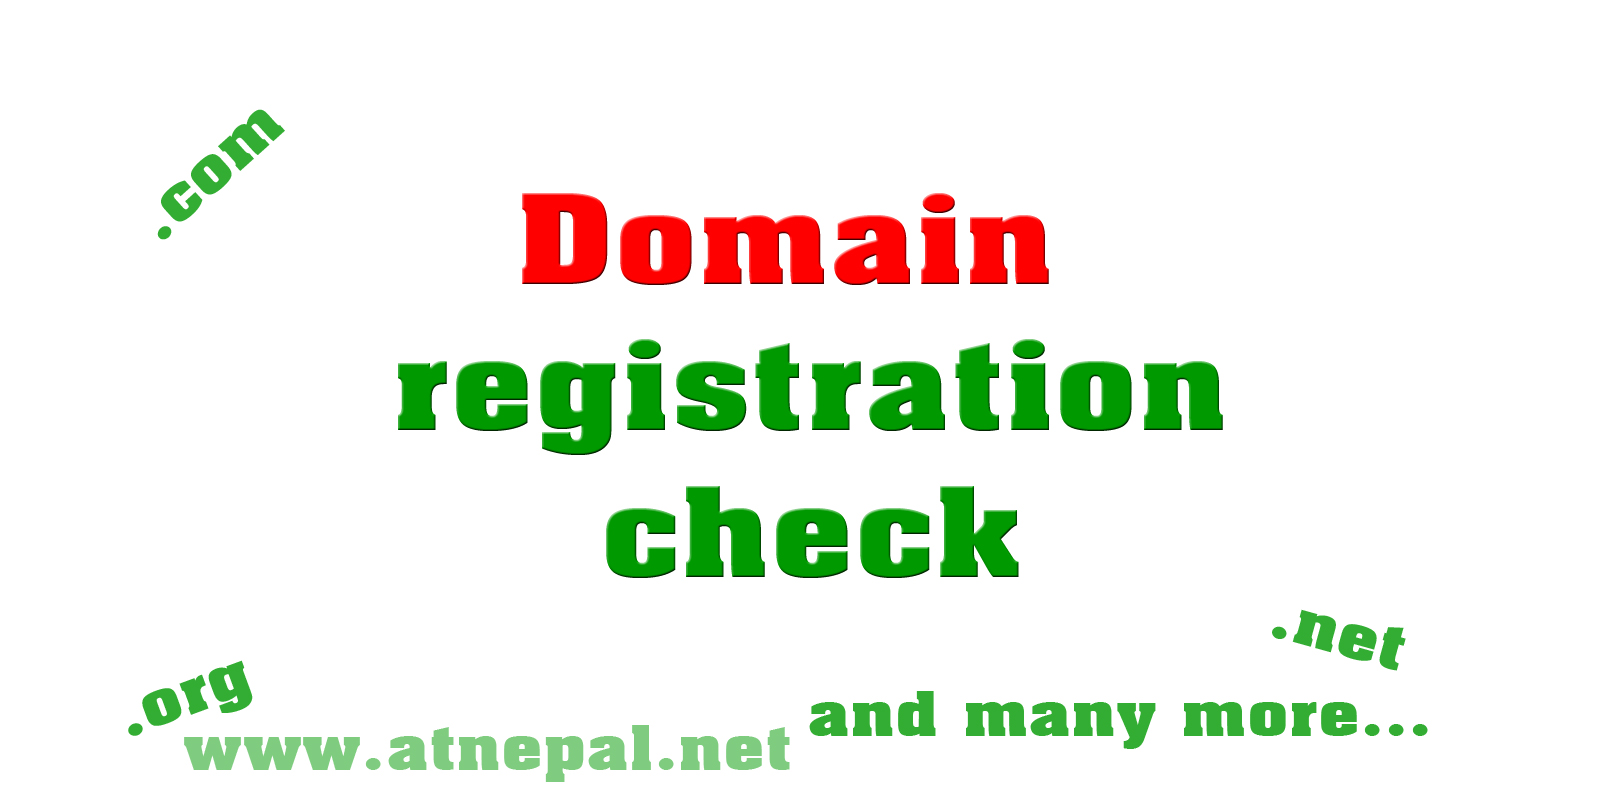 Domain registration check